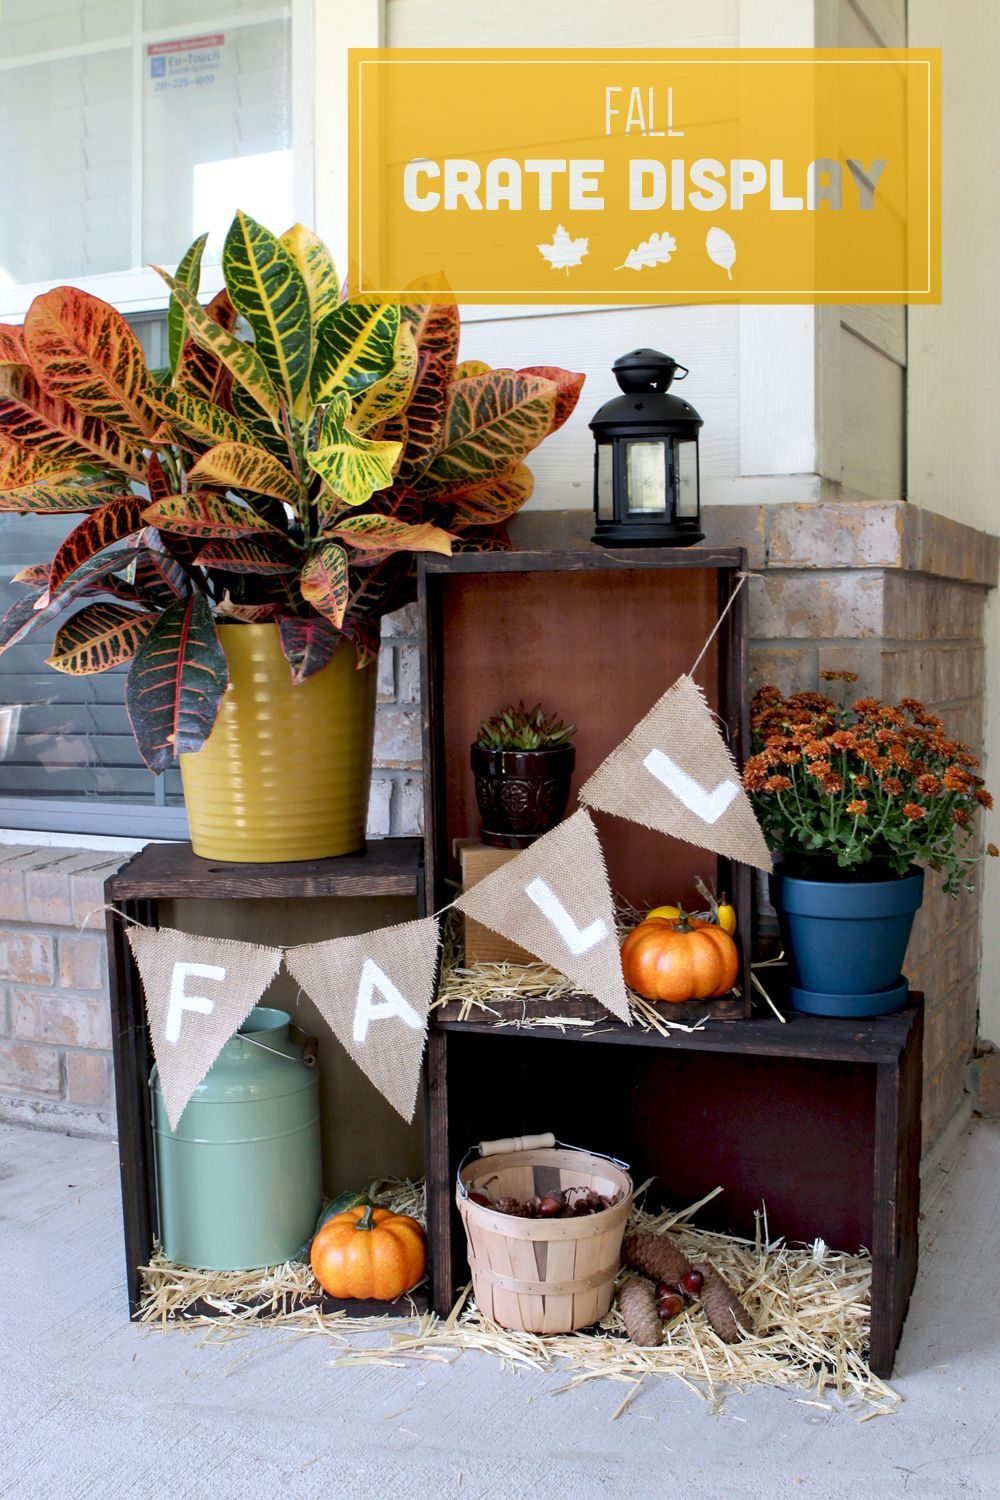 Fall Crate Display Fall Front Porch Decor Fall Outdoor Decor Fall Decorations Porch